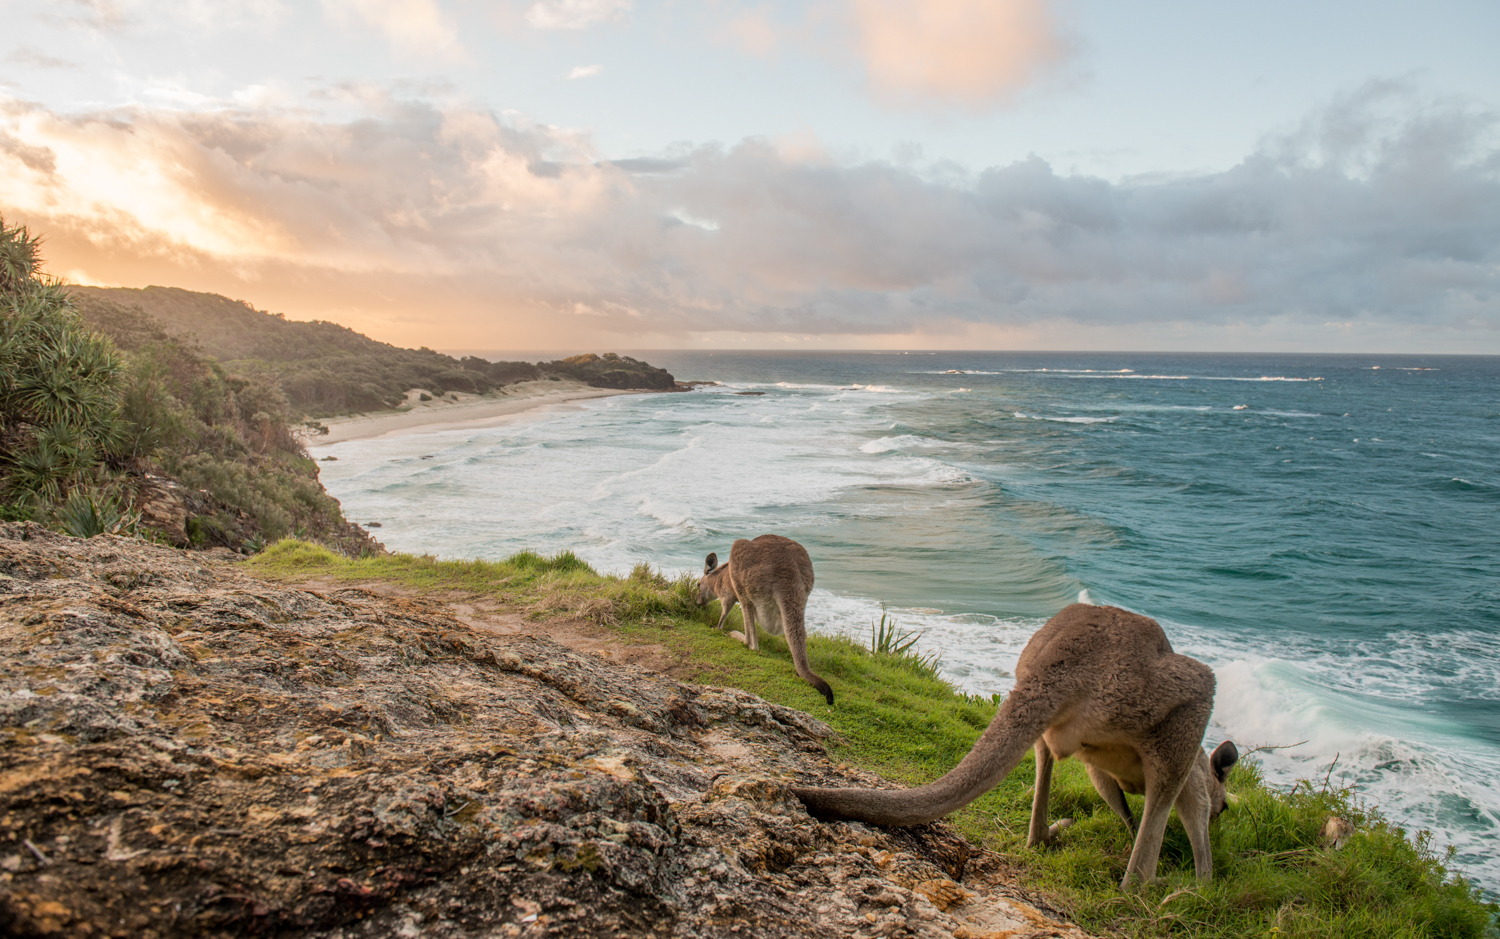 kangaroos over frenchman's beach